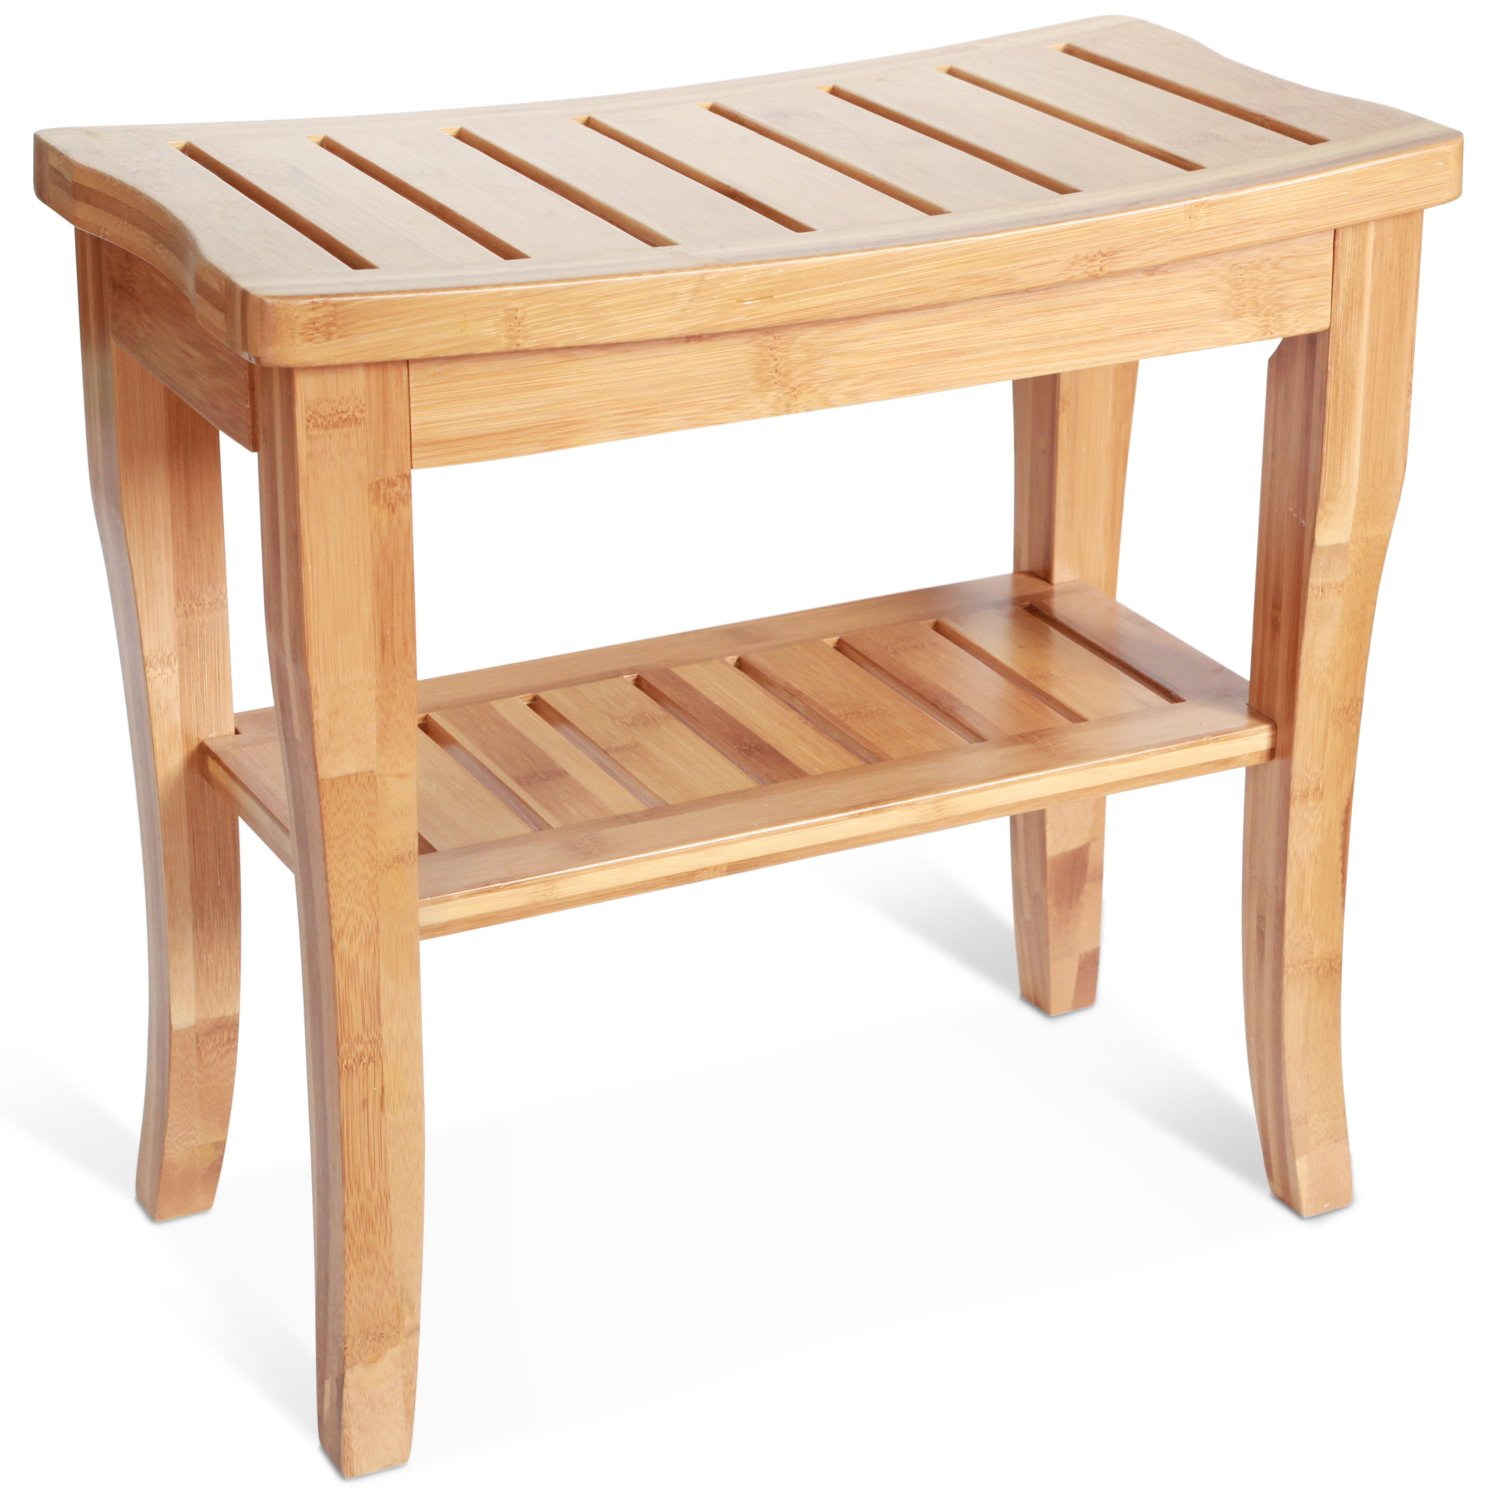 Deluxe Bamboo Shower Seat Bench With Storage Shelf